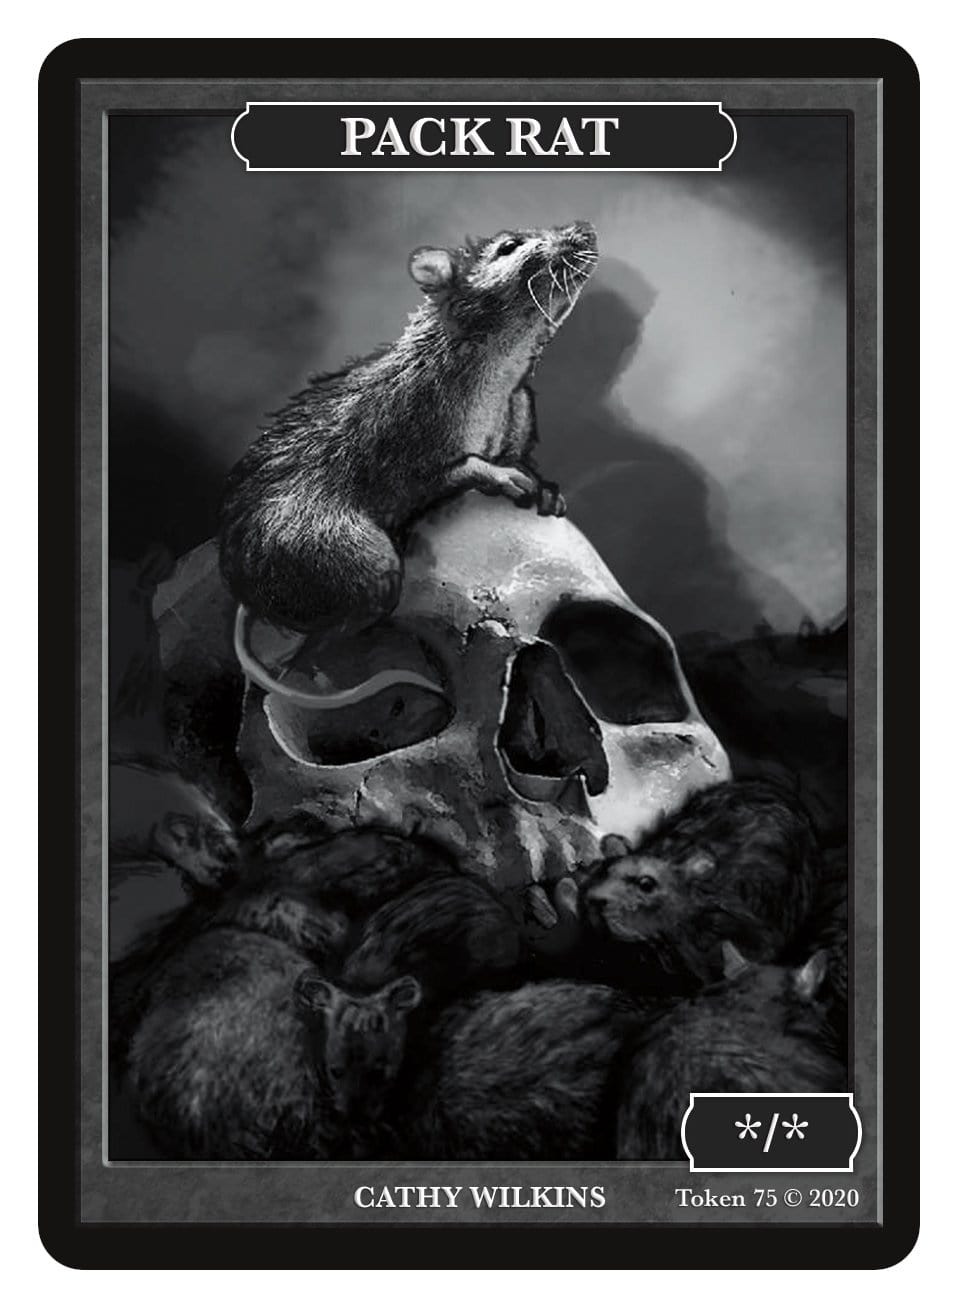 Pack Rat Token (*/*) by Cathy Wilkins